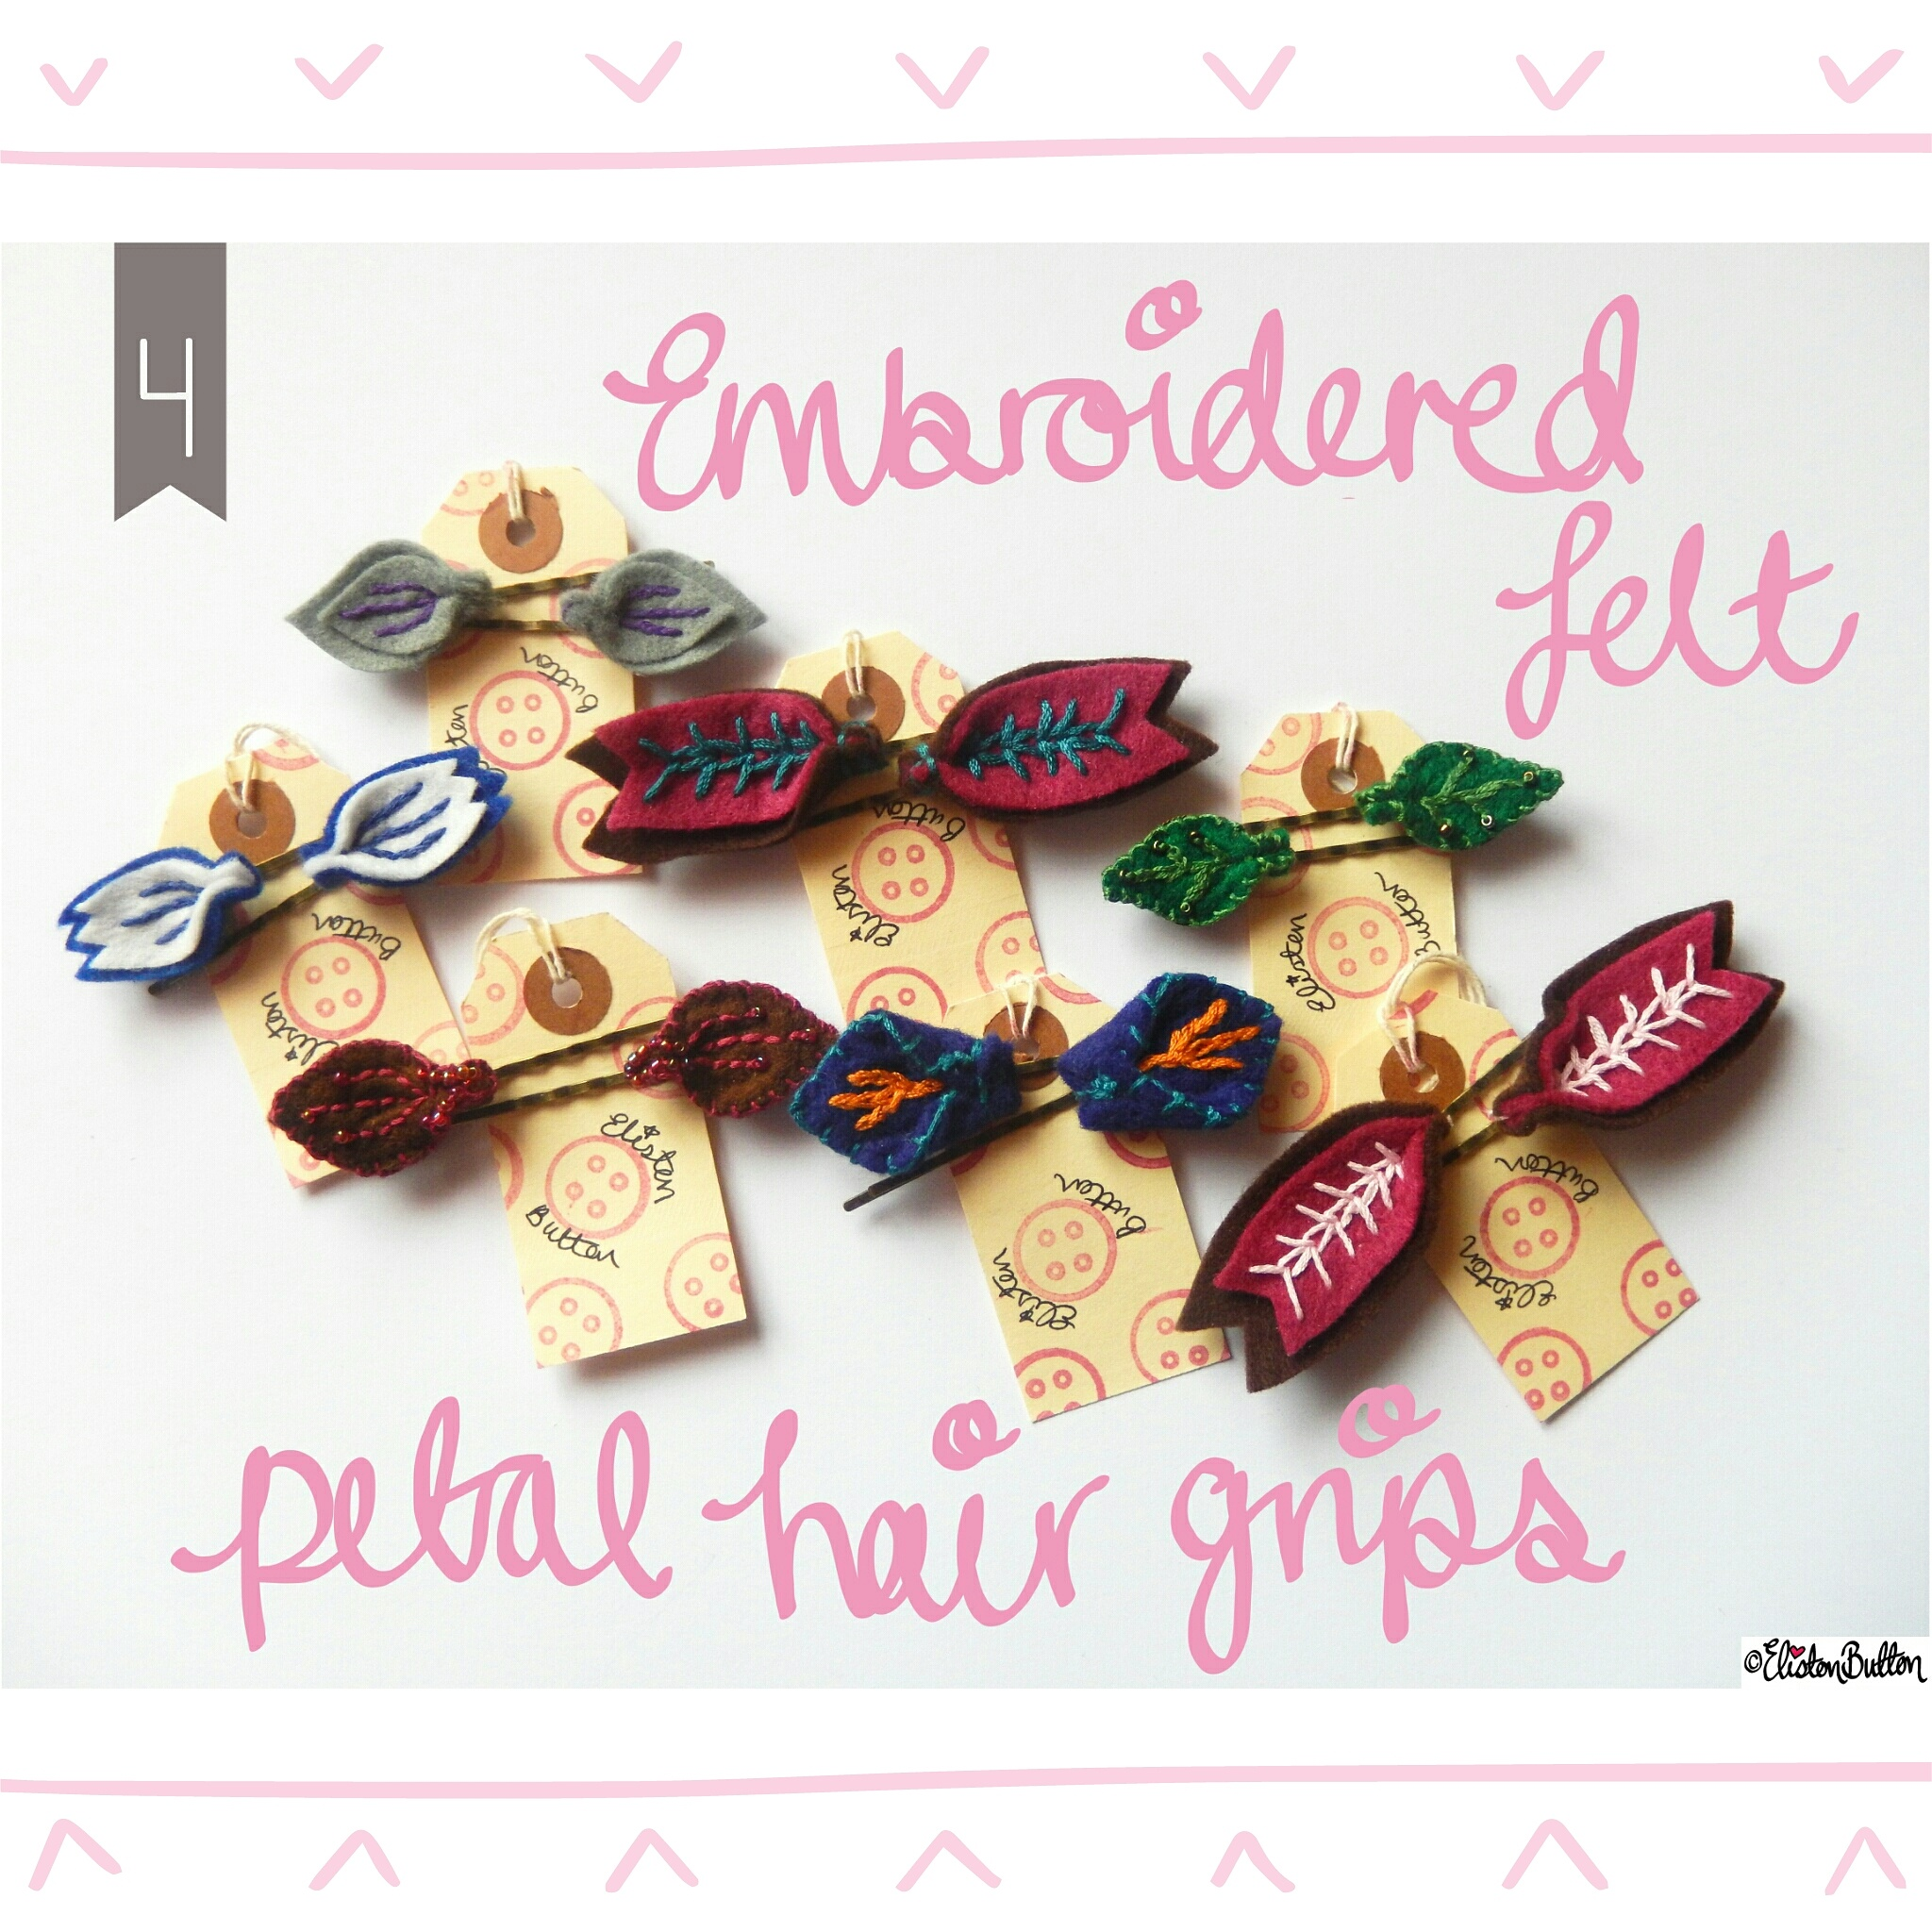 Embroidered Felt Petal Hair Grips - Create 28 - I Did It! (a.k.a. My Therapy Session) at www.elistonbutton.com - Eliston Button - That Crafty Kid – Art, Design, Craft & Adventure.